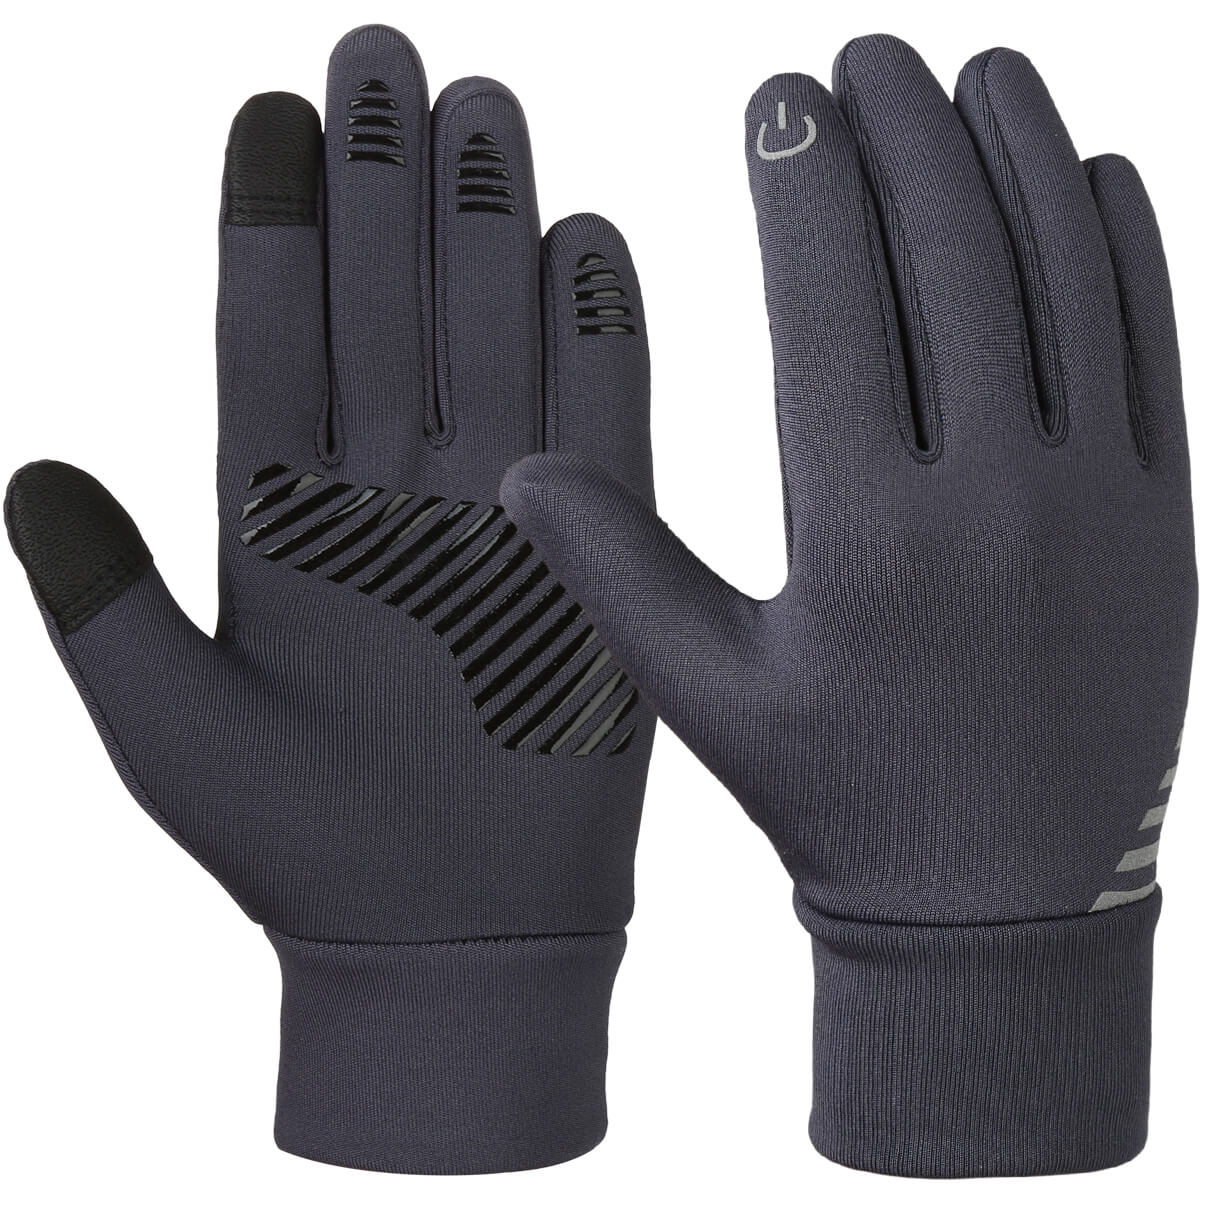 Types of Winter Gloves